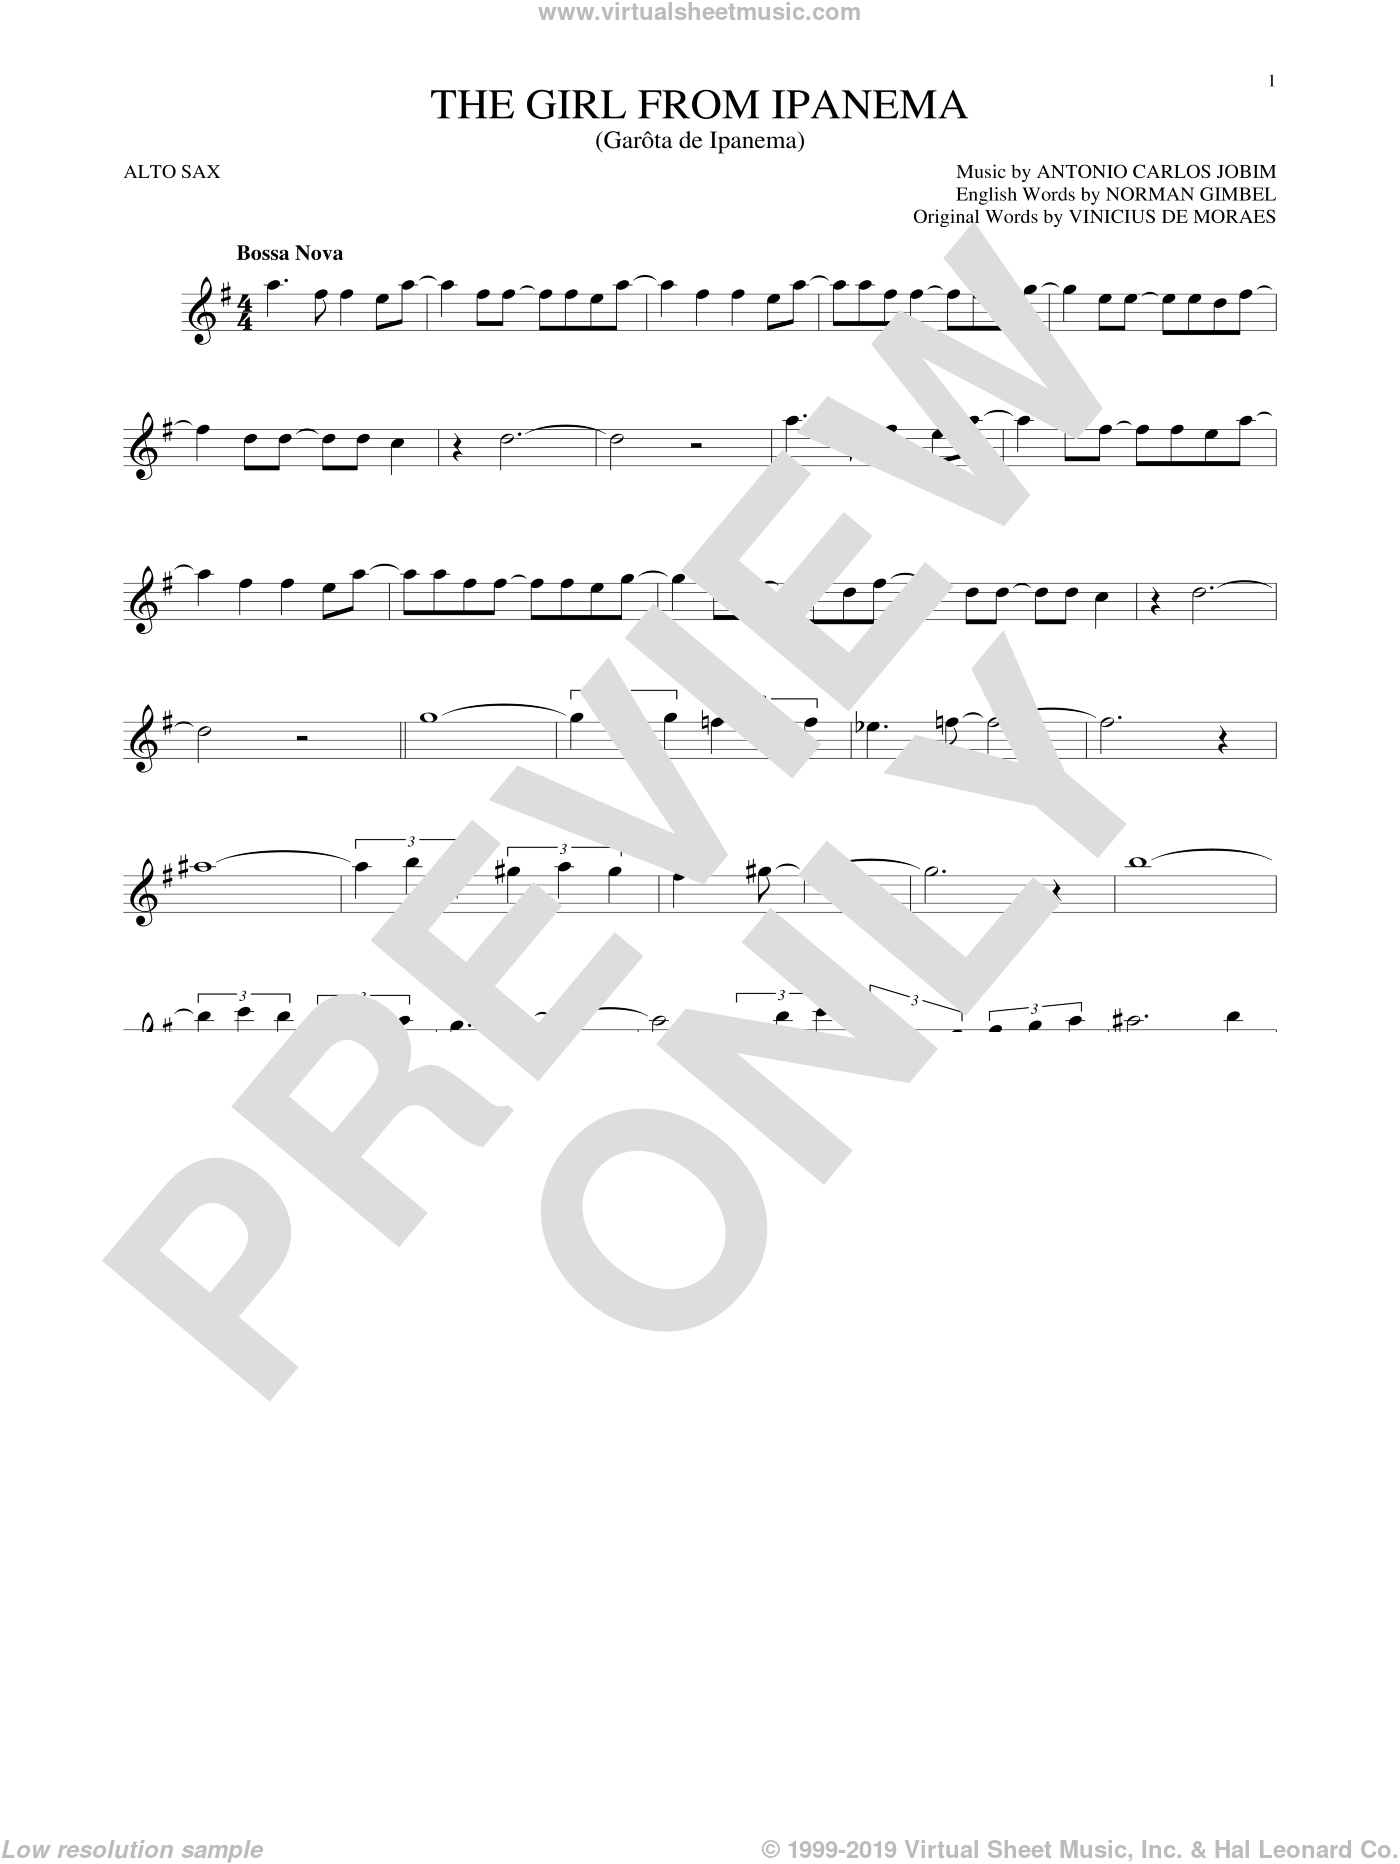 The Girl From Ipanema sheet music for alto saxophone solo by Norman Gimbel, Stan Getz & Astrud Gilberto, Antonio Carlos Jobim and Vinicius de Moraes, intermediate skill level